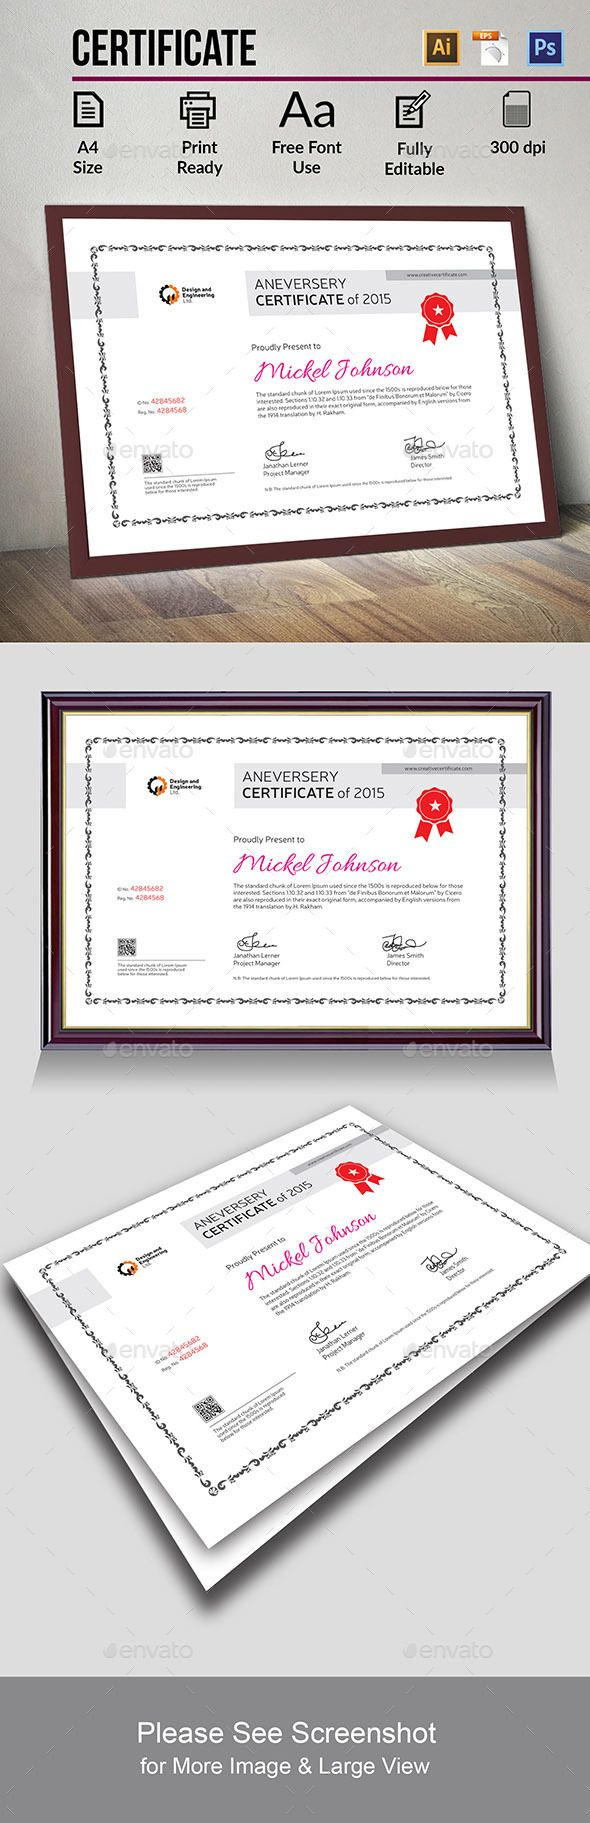 Certificate Certificate Template Psd Vector Ai Download Here